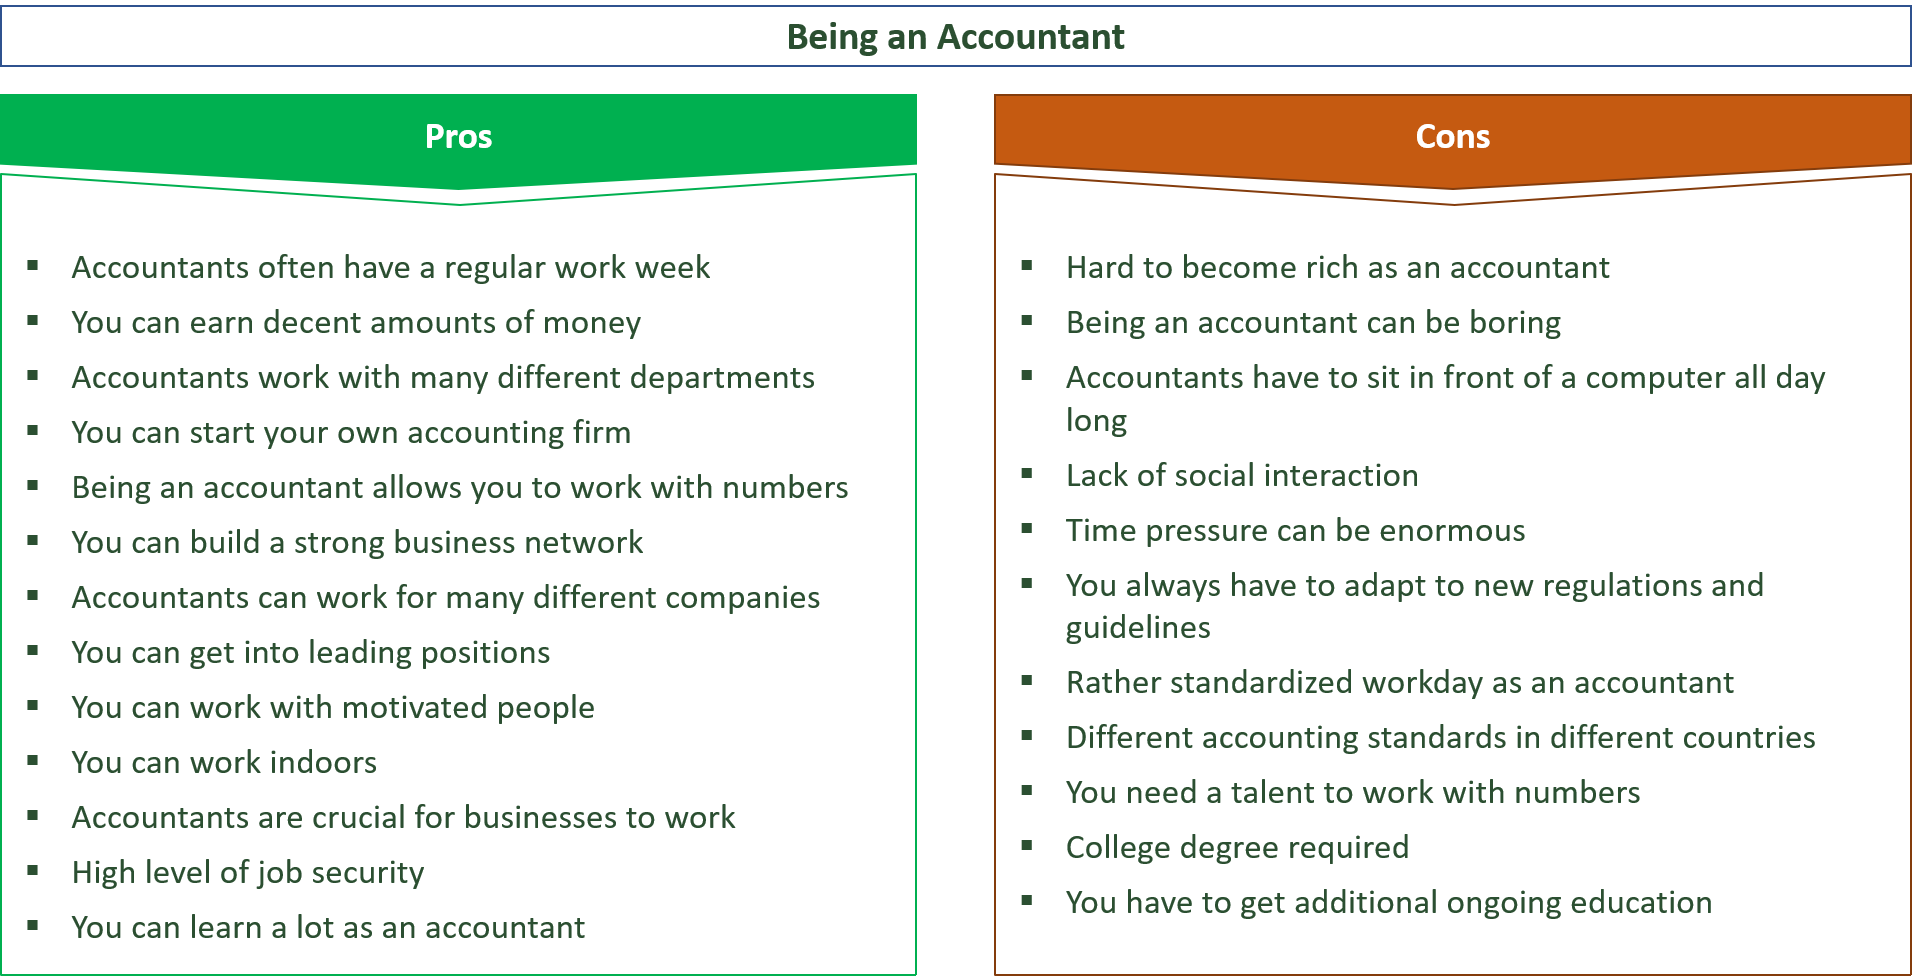 advantages and disadvantages of being an accountant